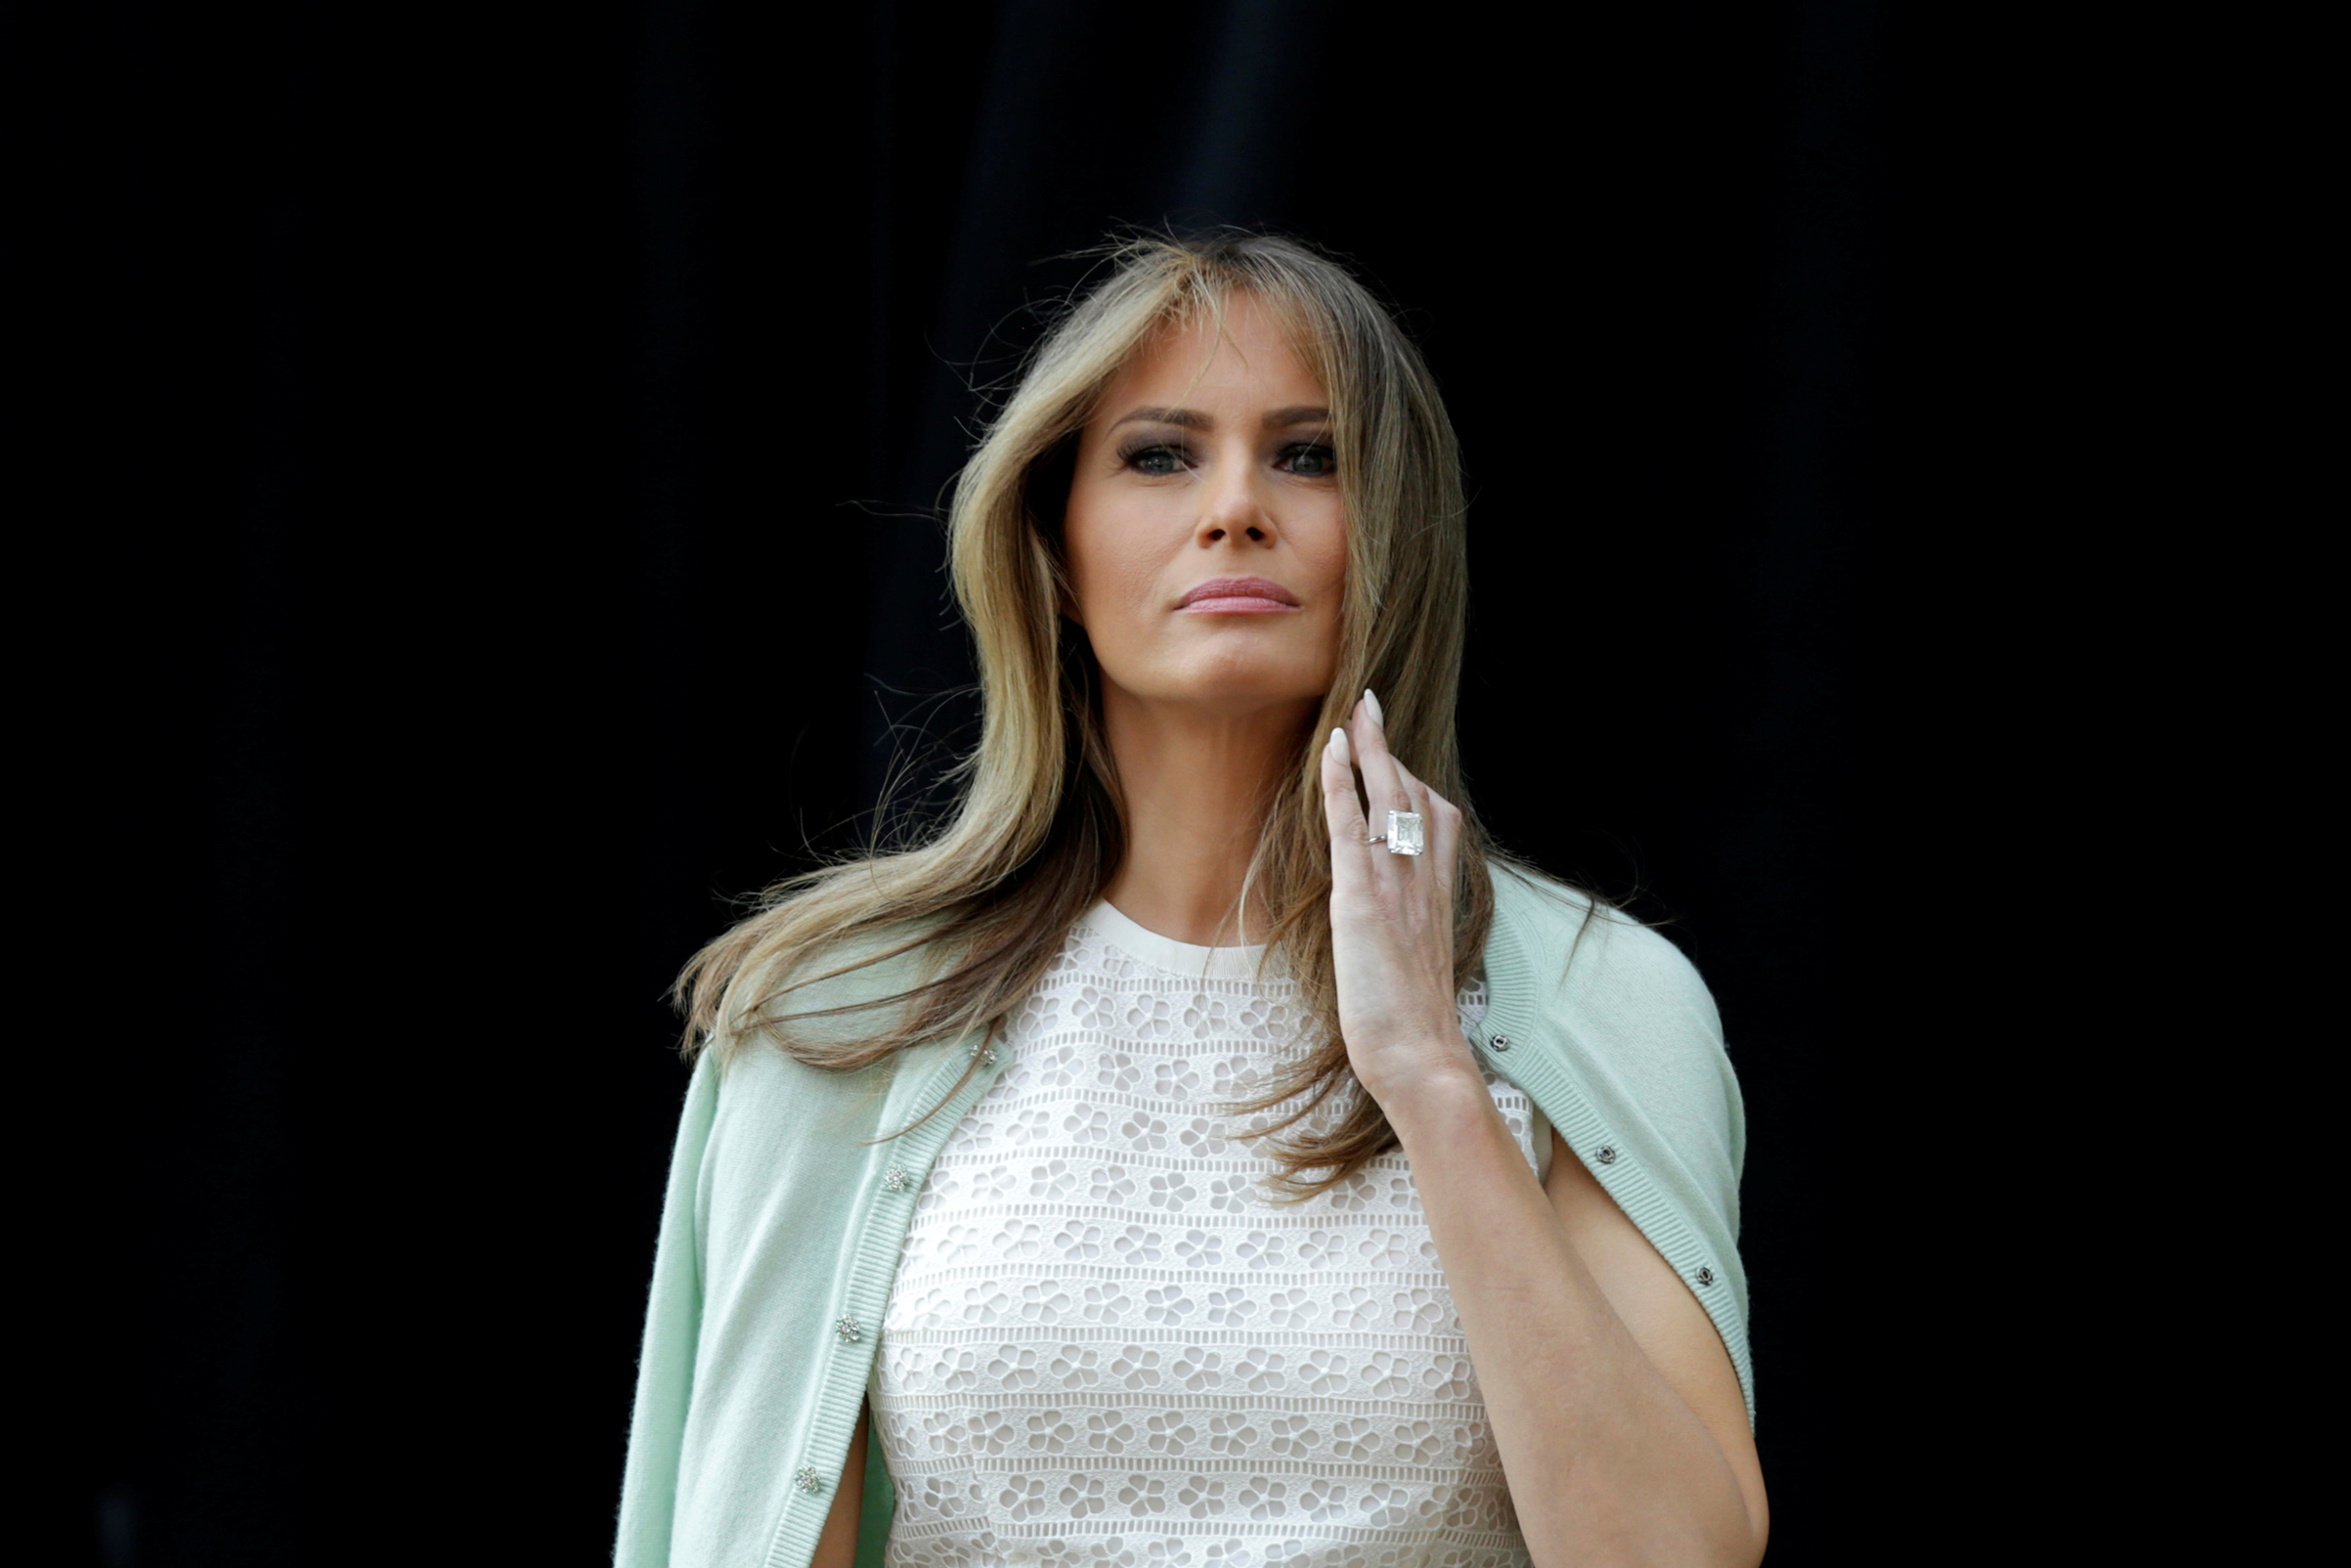 First lady Melania Trump wearing Giambattista Valli dress and a pale green cardigan, attends the opening of Bunny Mellon Healing Garden at Children's National Medical Center in Washington, D.C., April 28, 2017.